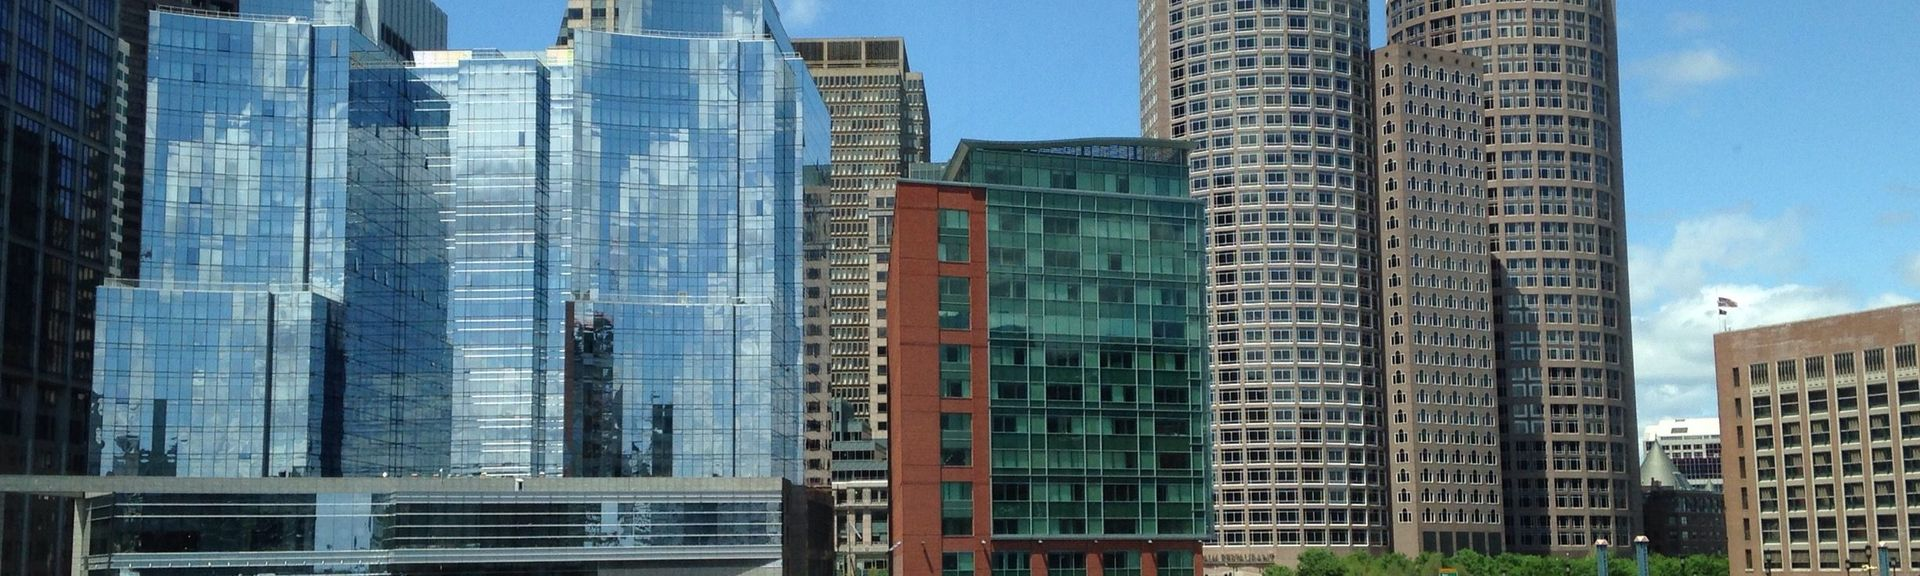 Seaport District, Boston, MA, USA